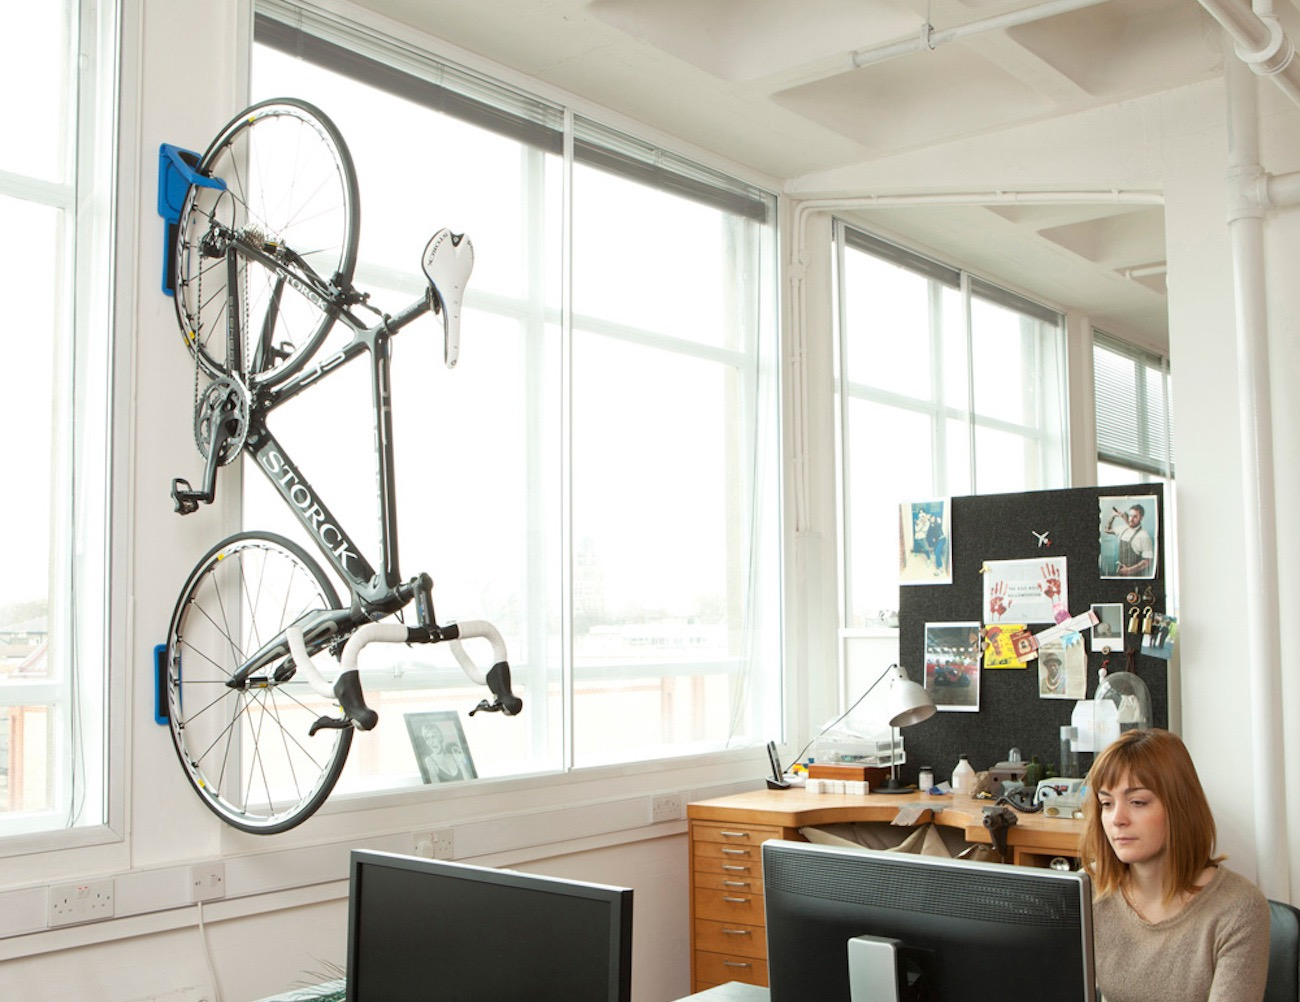 Endo+Fold+Flat+Vertical+Bike+Storage+System+By+Cycloc